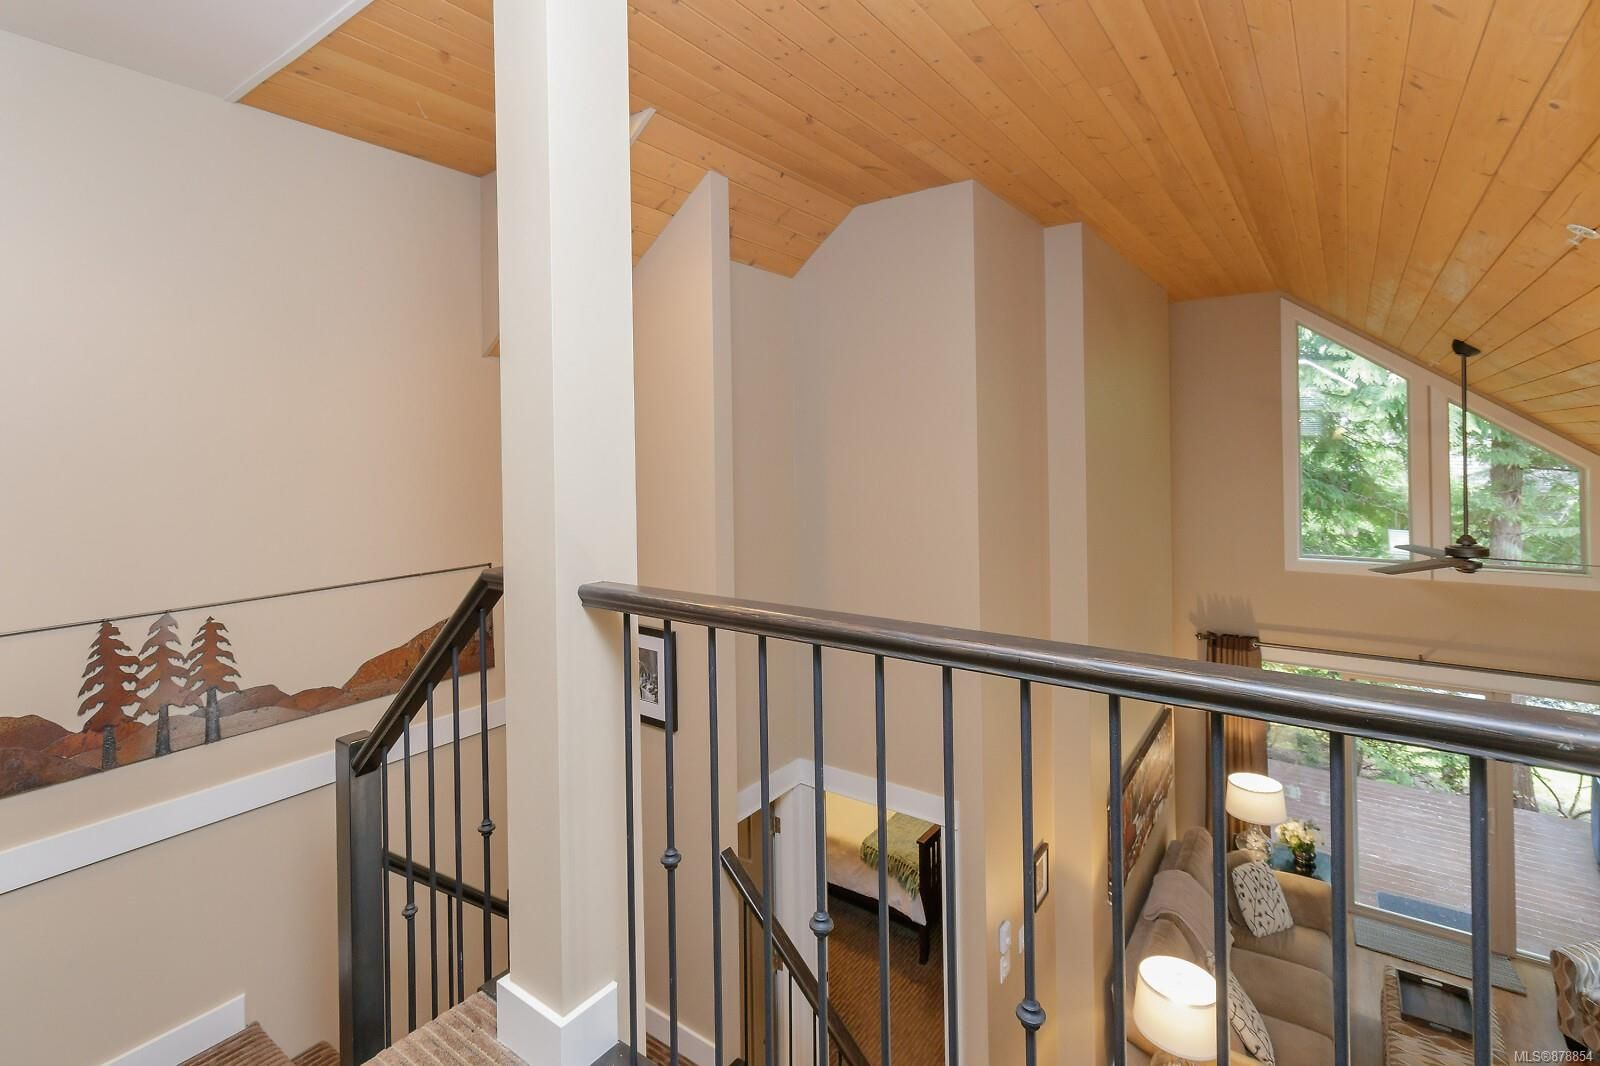 Photo 14: Photos: 223 1130 Resort Dr in : PQ Parksville Row/Townhouse for sale (Parksville/Qualicum)  : MLS®# 878854